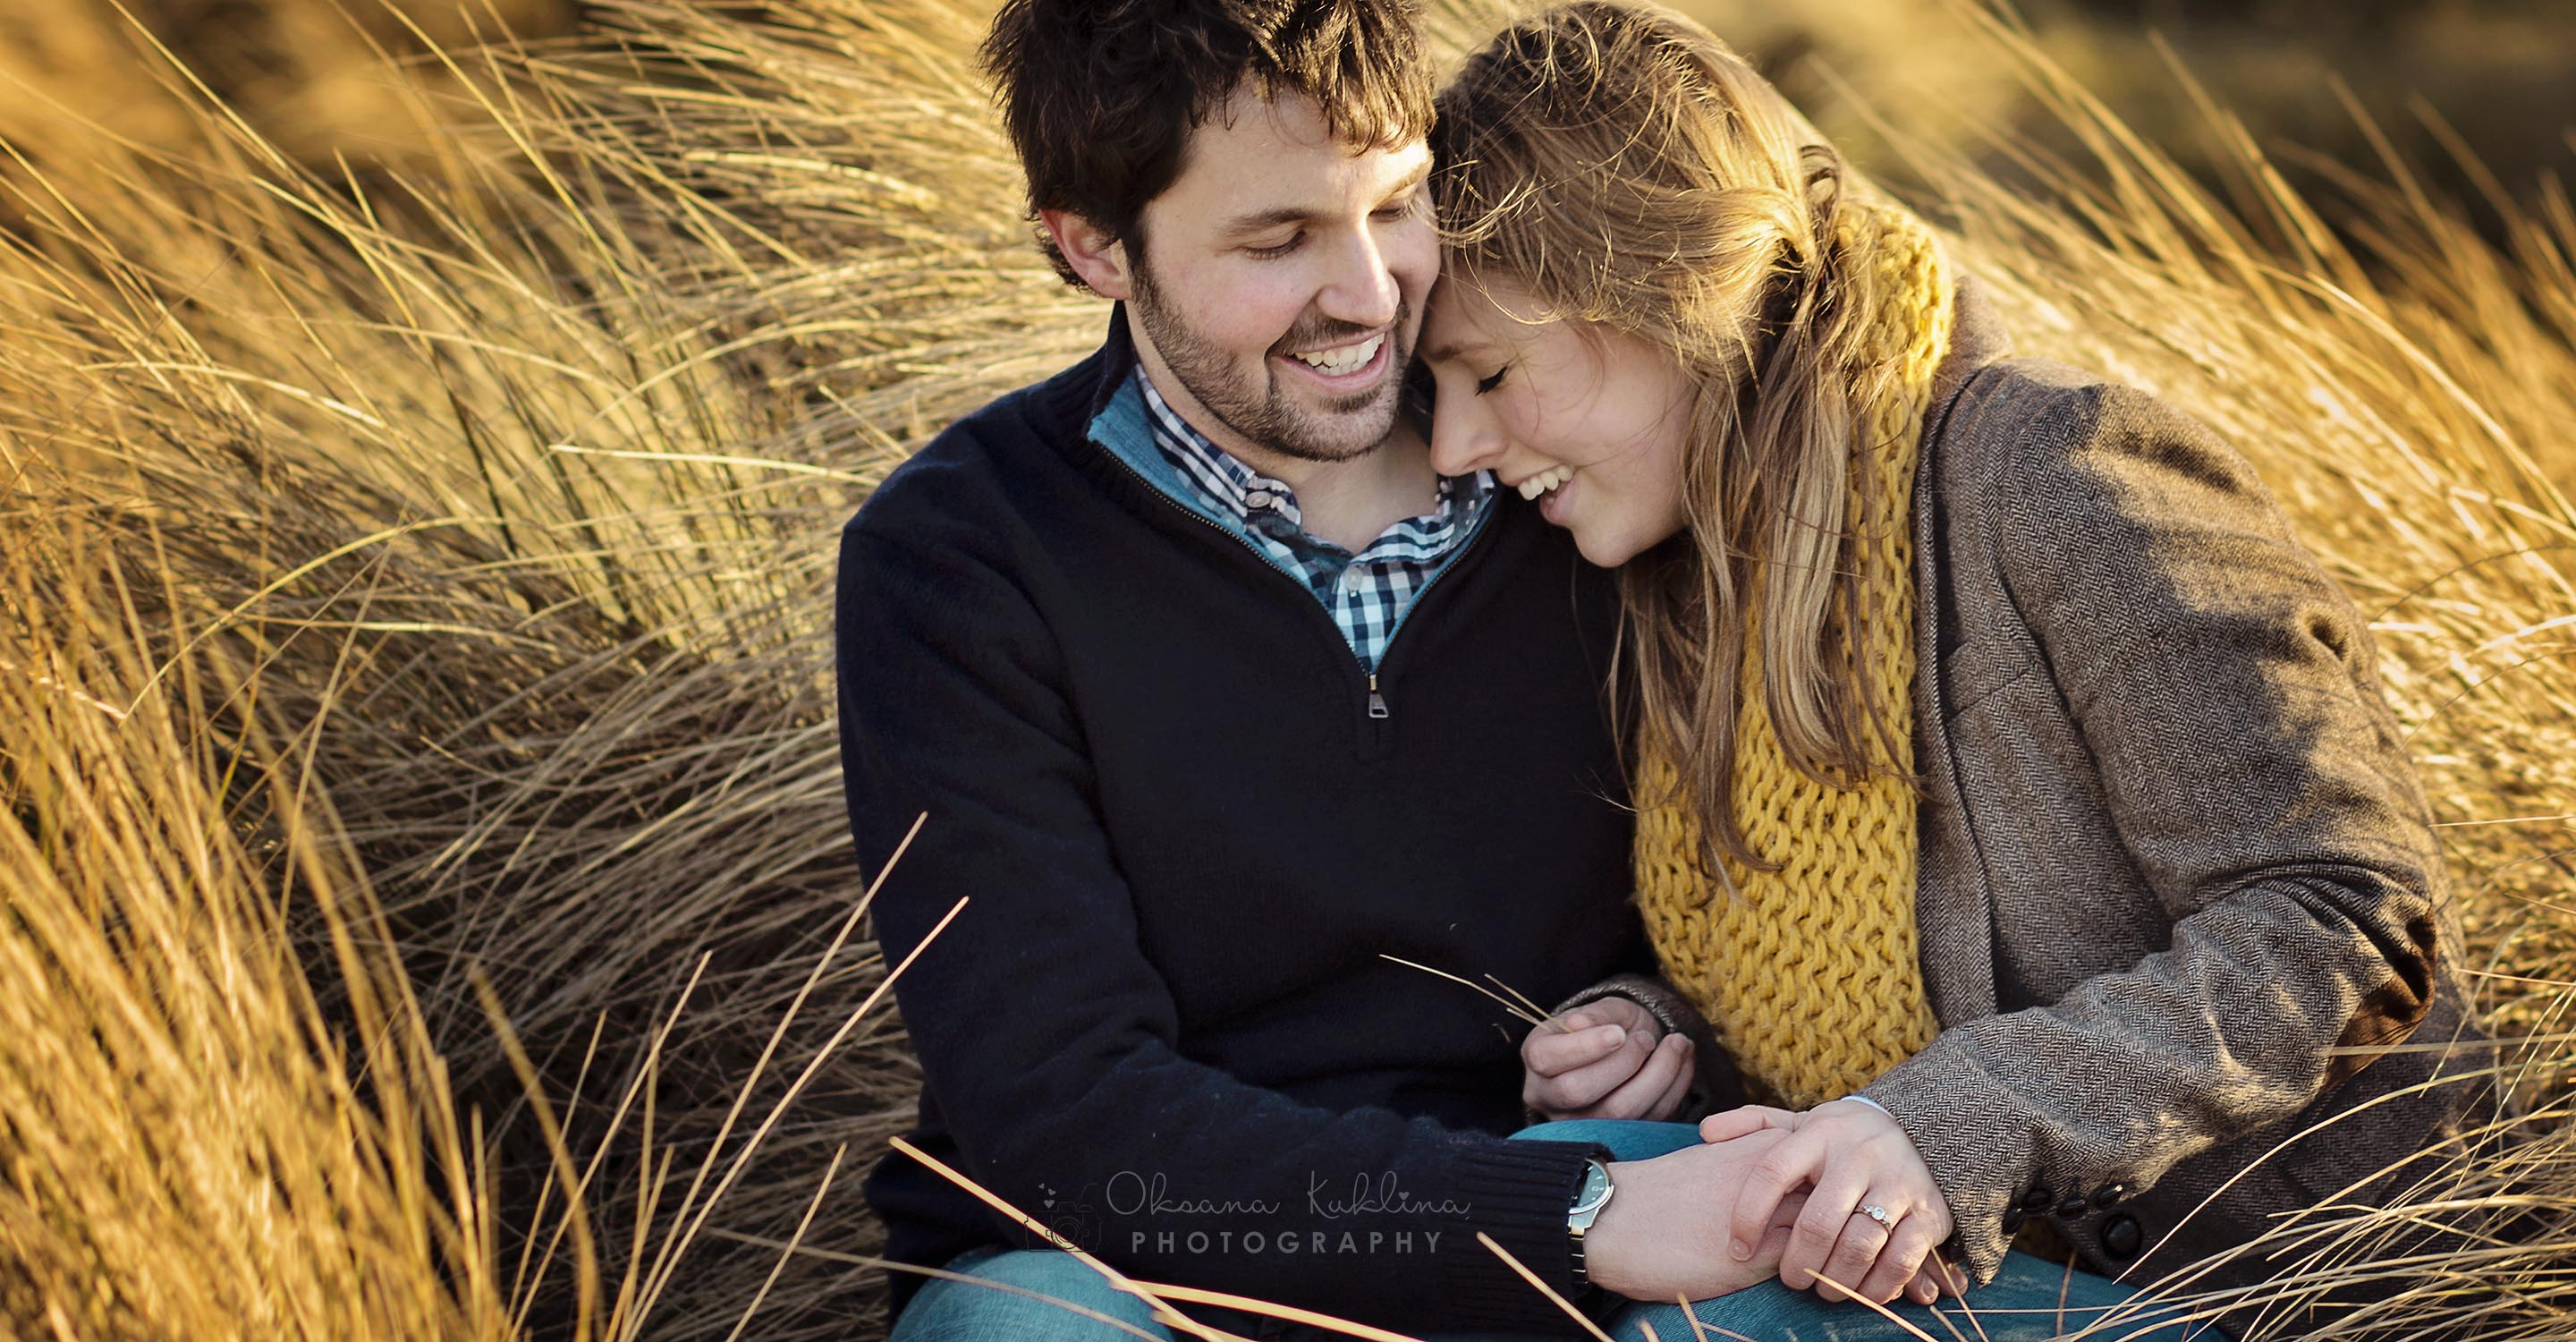 Scotland Engagement Photographer - Love Shoot in Scotland - Scotland adventure - Adventurous couple - Couple Photo